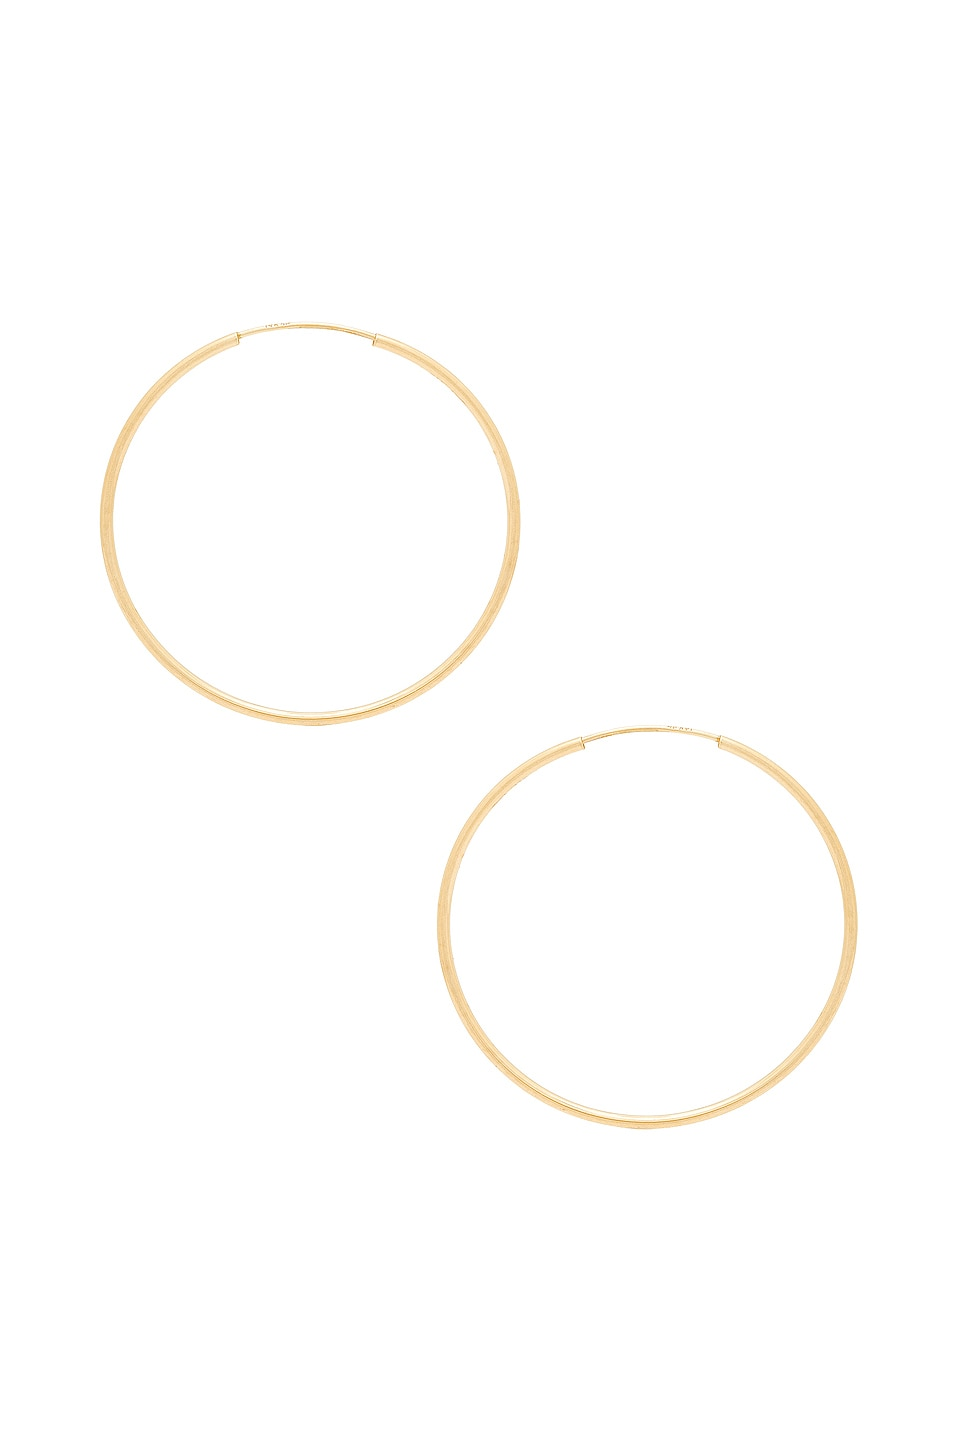 Sachi Infinity Hoops in Yellow Gold